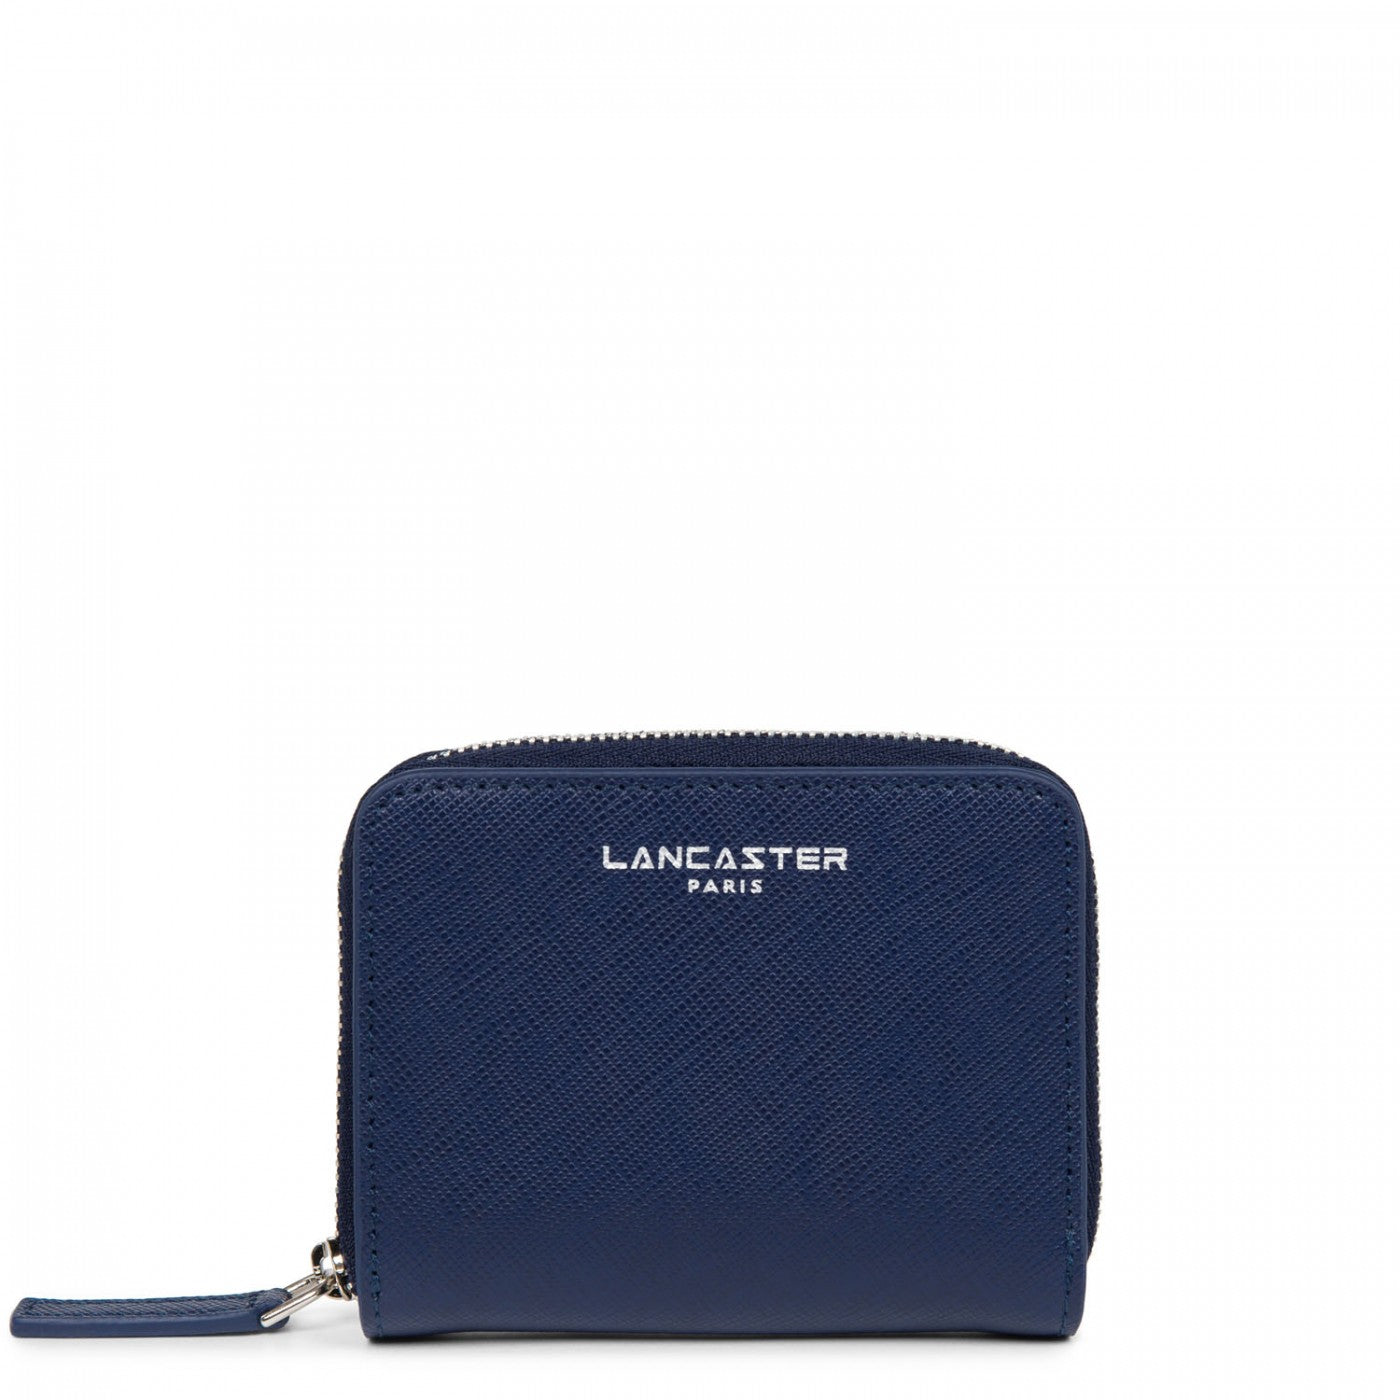 LANCASTER COIN PURSE - NAVY